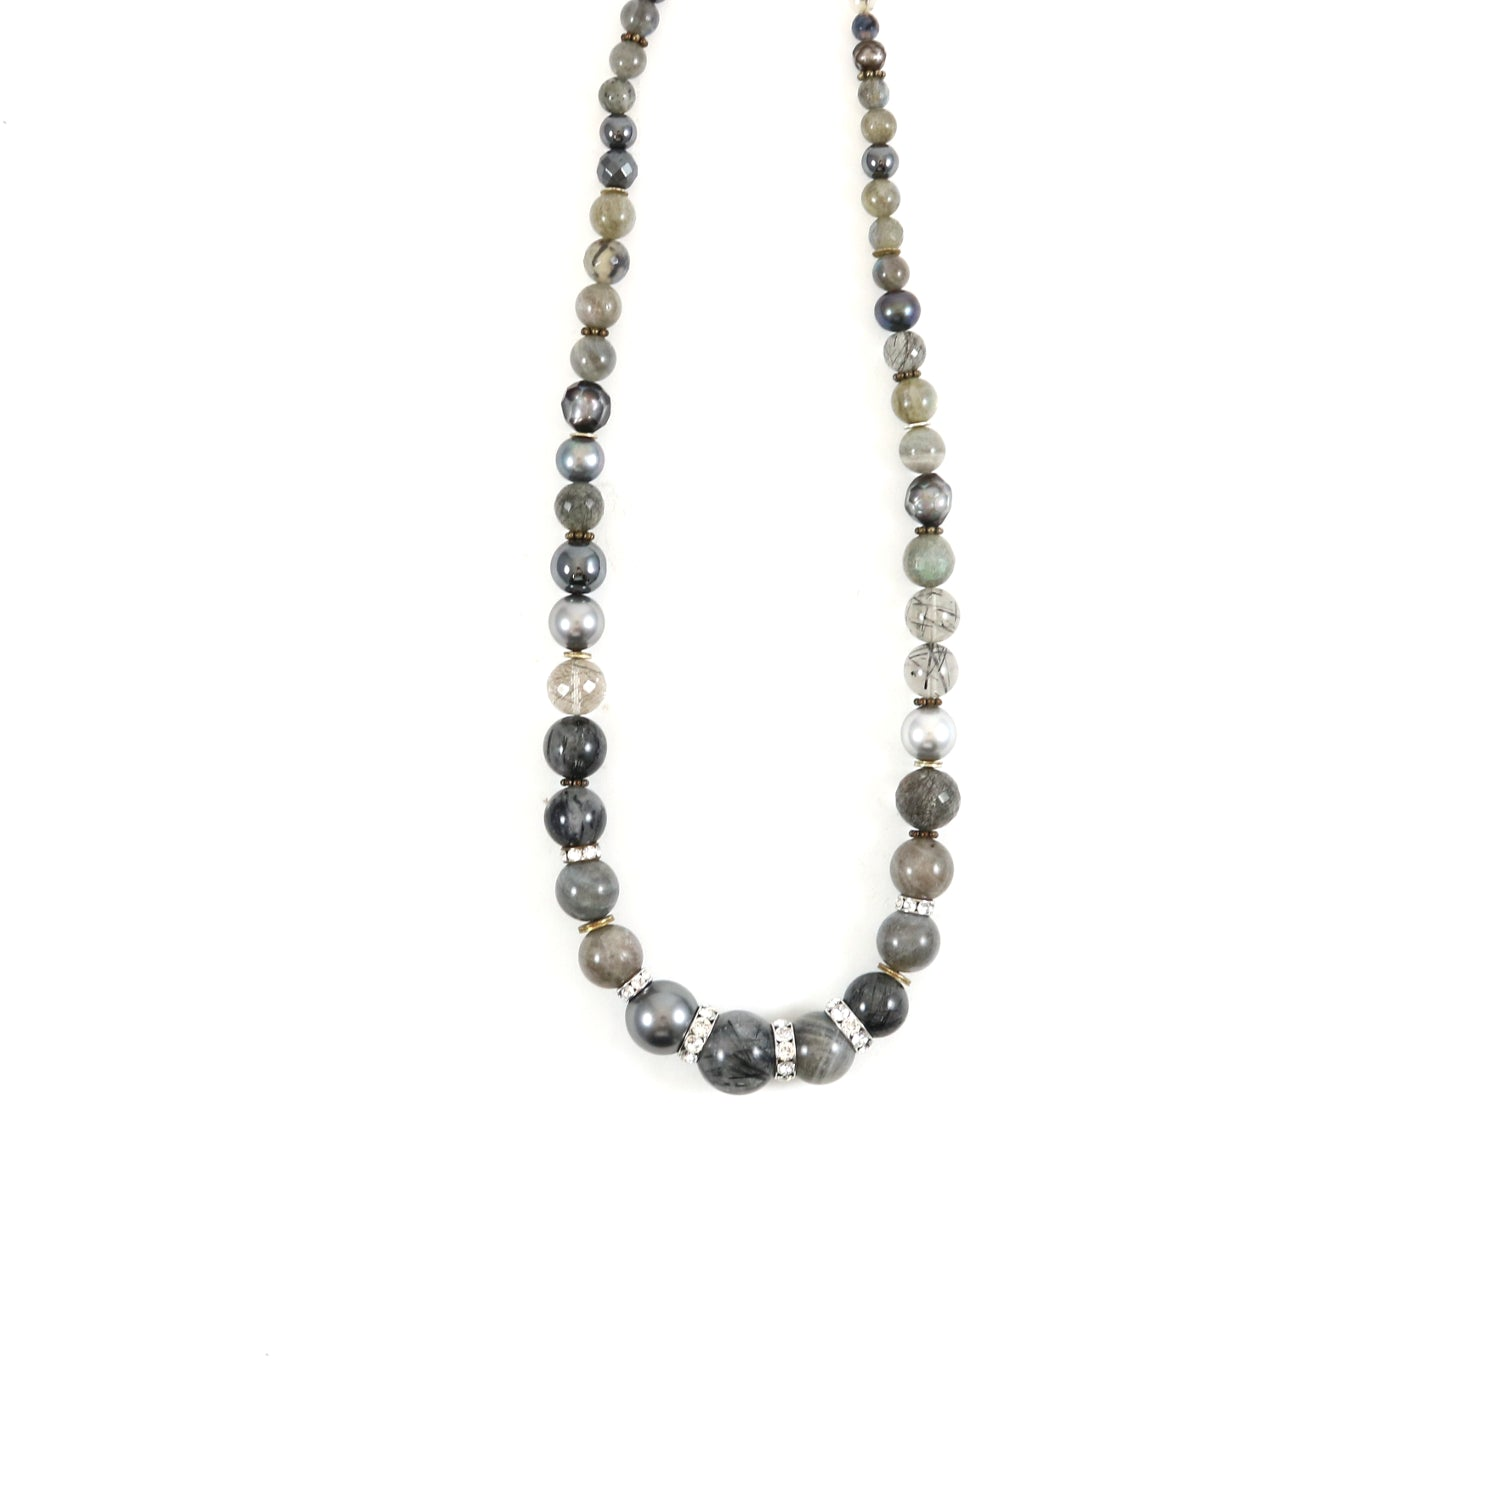 Statement Beads Necklace